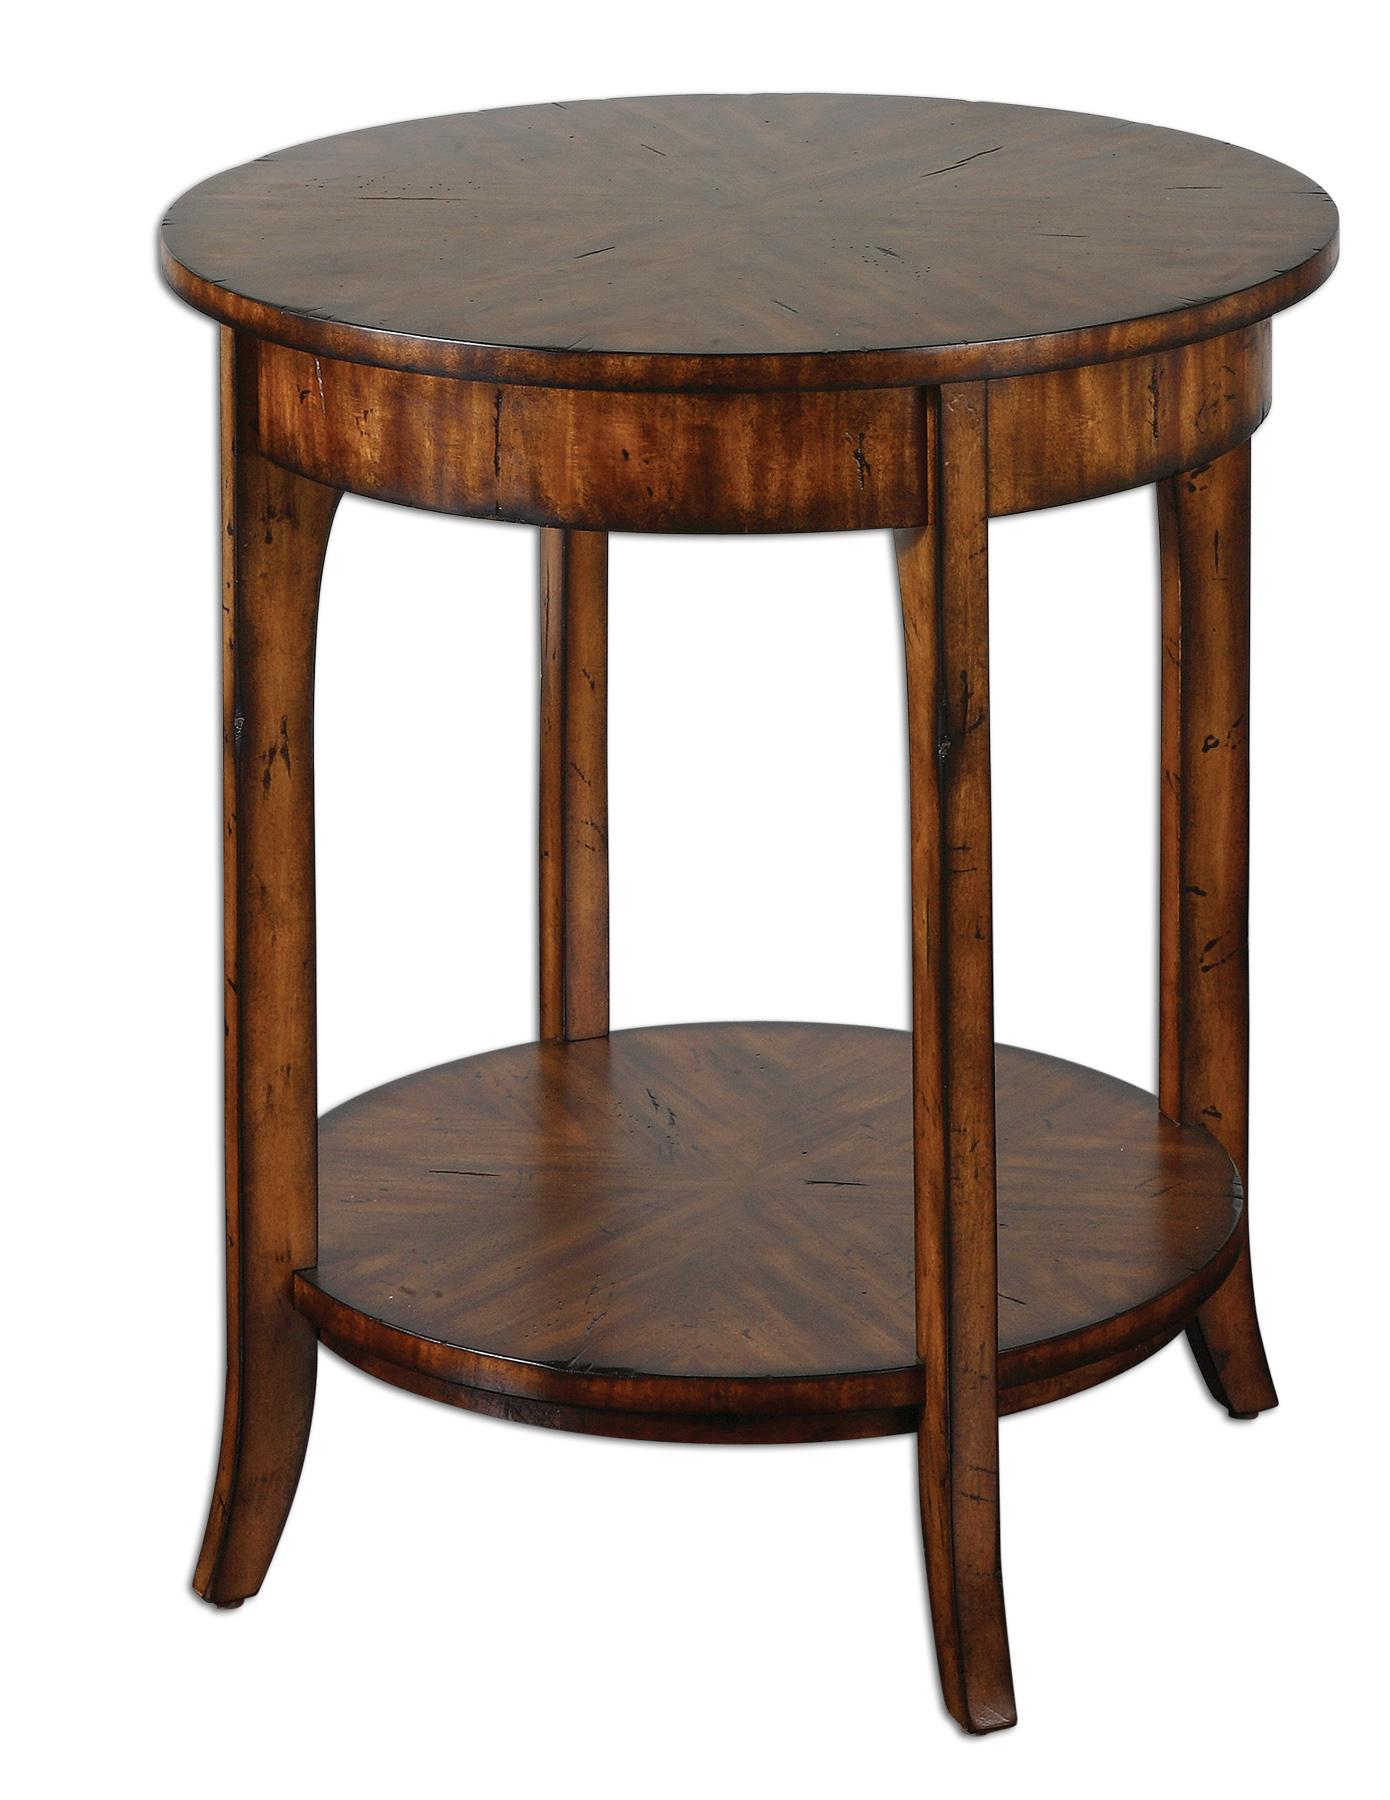 Accent Furniture - Occasional Tables Carmel Lamp Table by Uttermost at Dunk & Bright Furniture